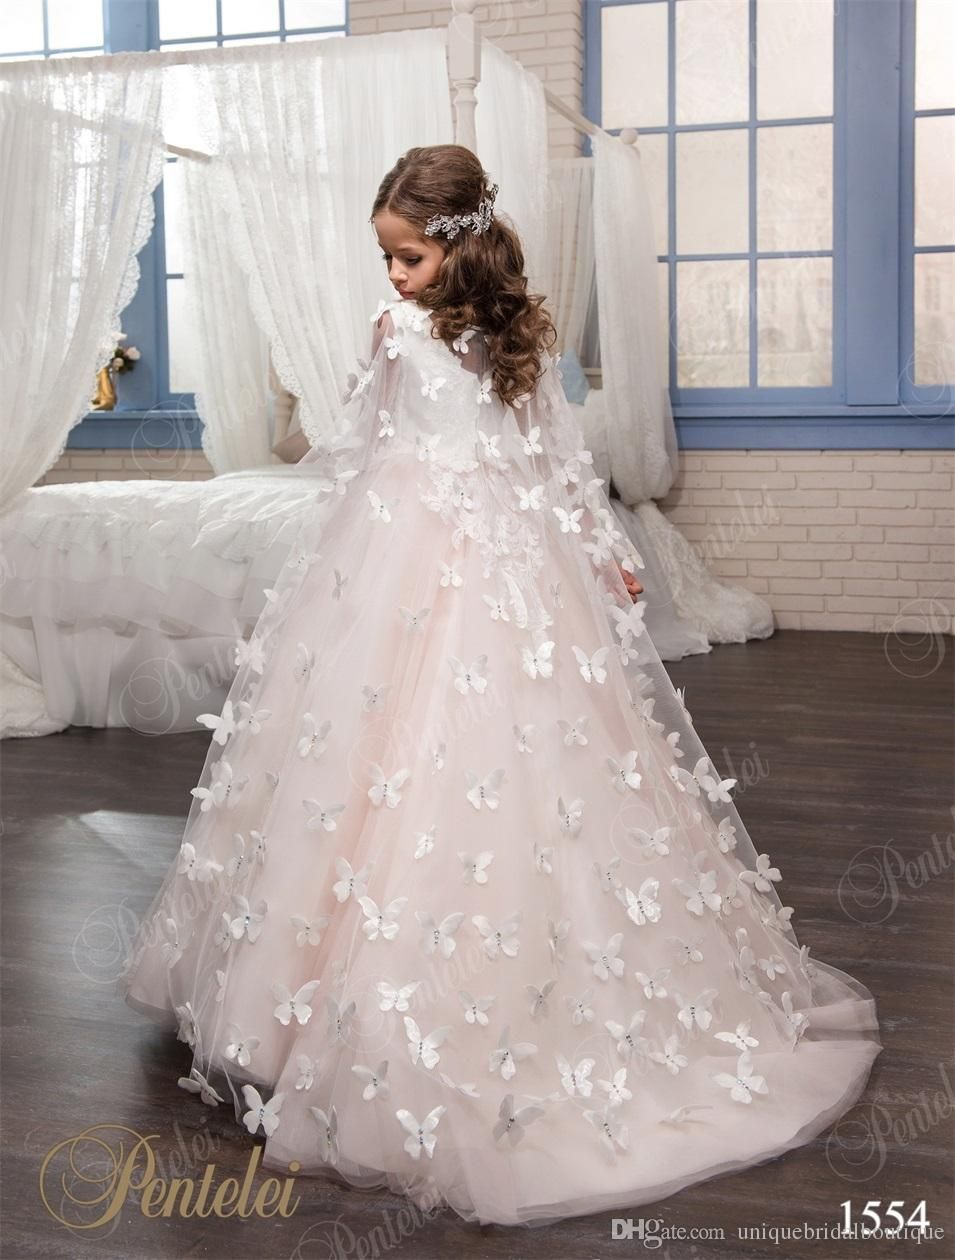 Kids wedding dresses with butterfly wraps pentelei hand made